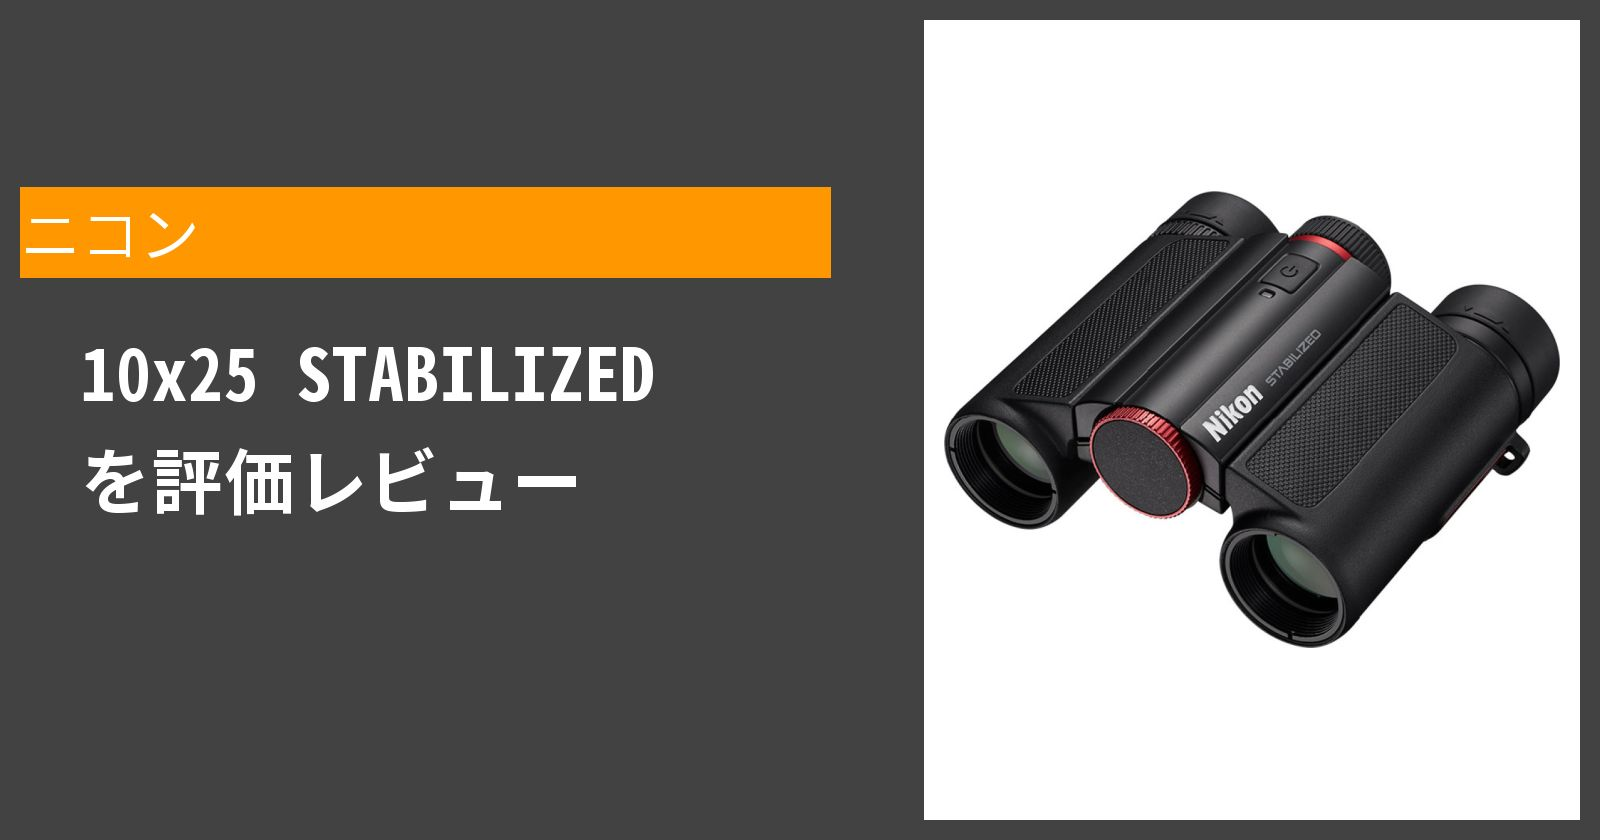 10x25 STABILIZEDを徹底評価